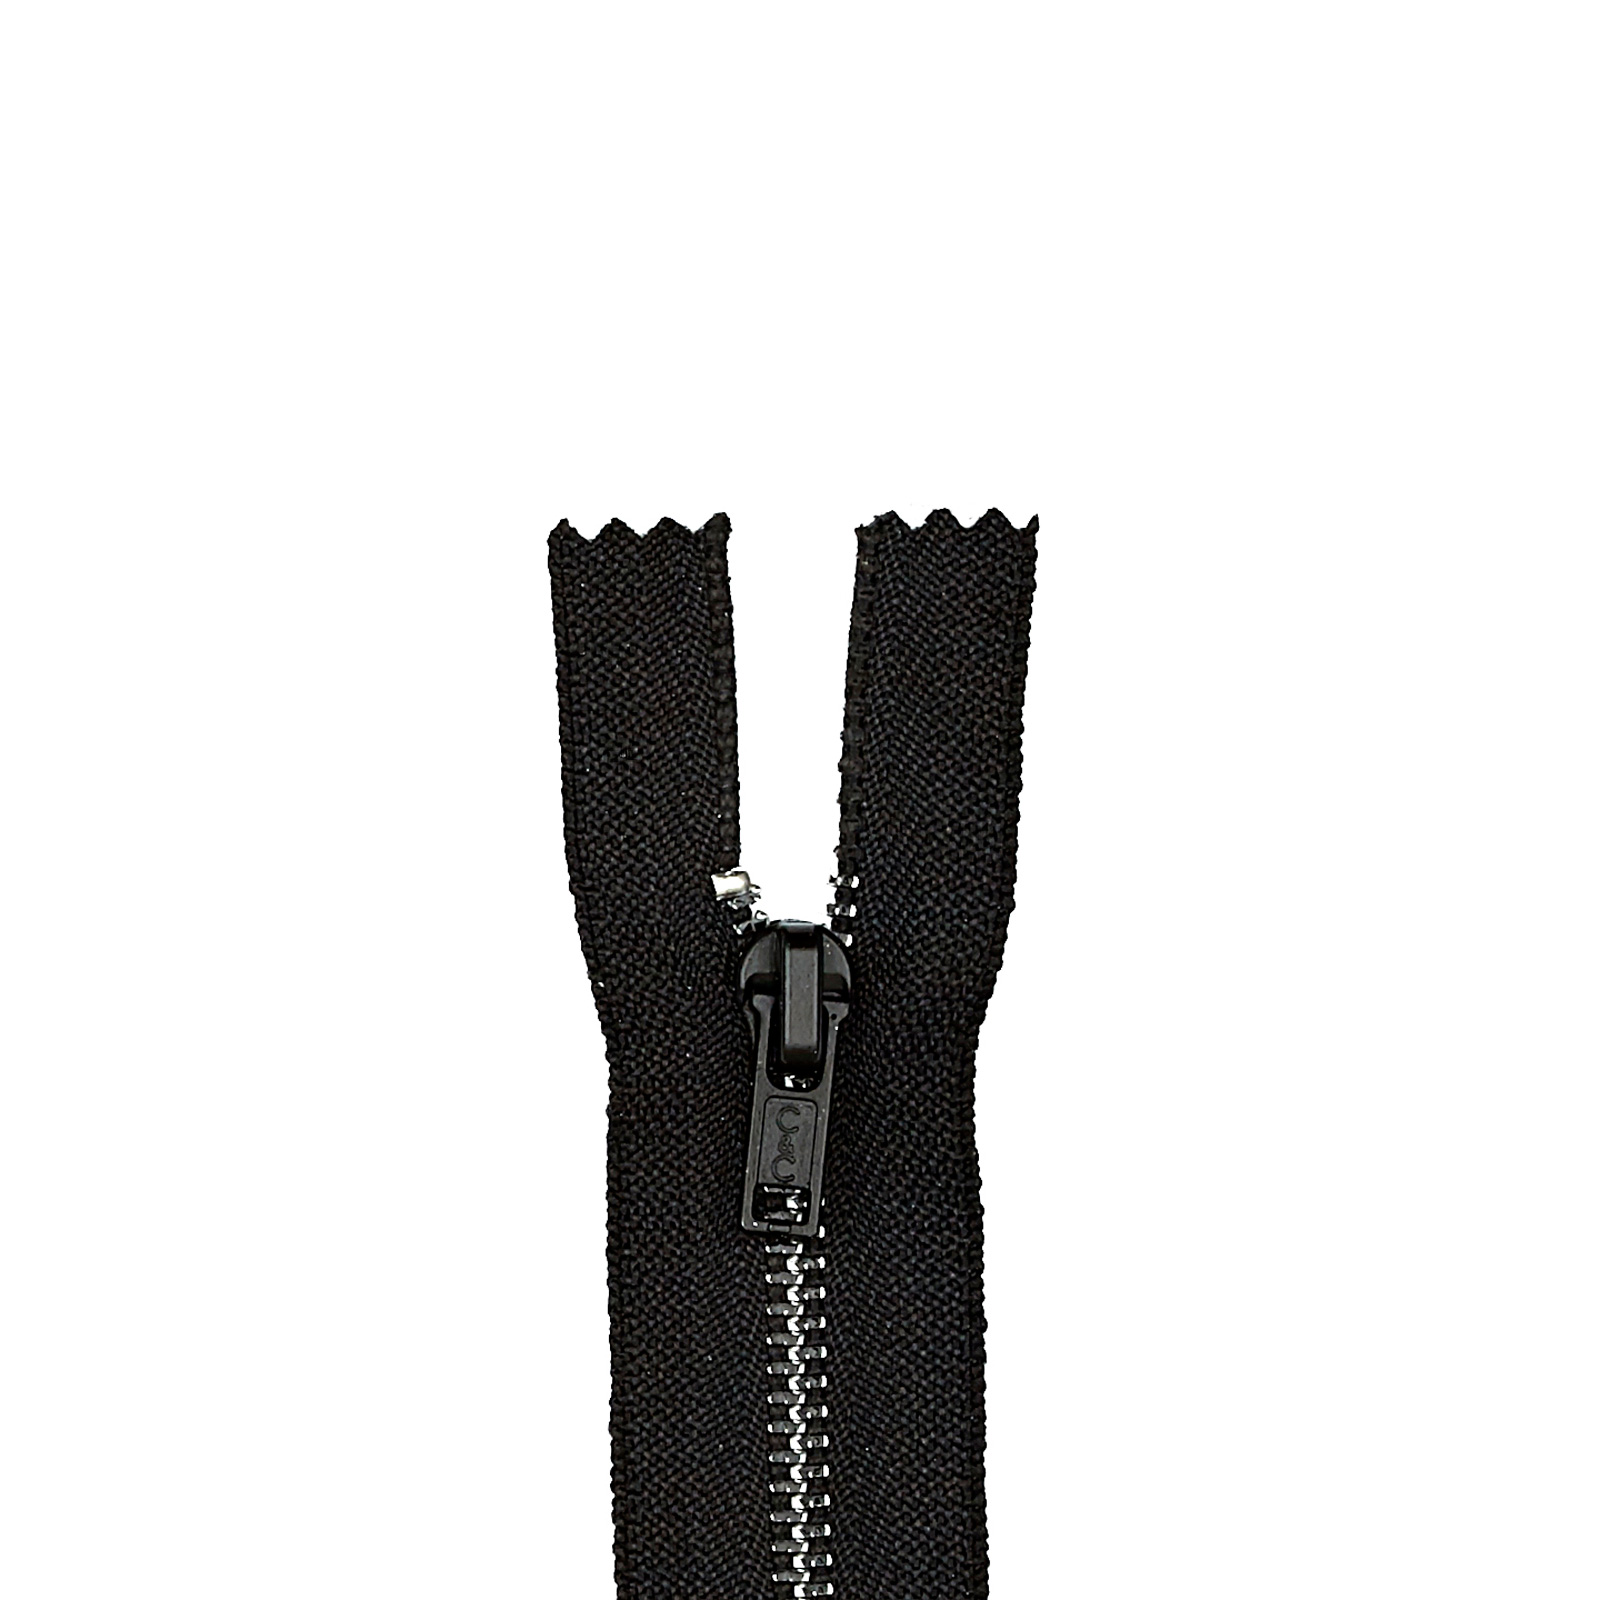 Metal All Purpose Zipper 12